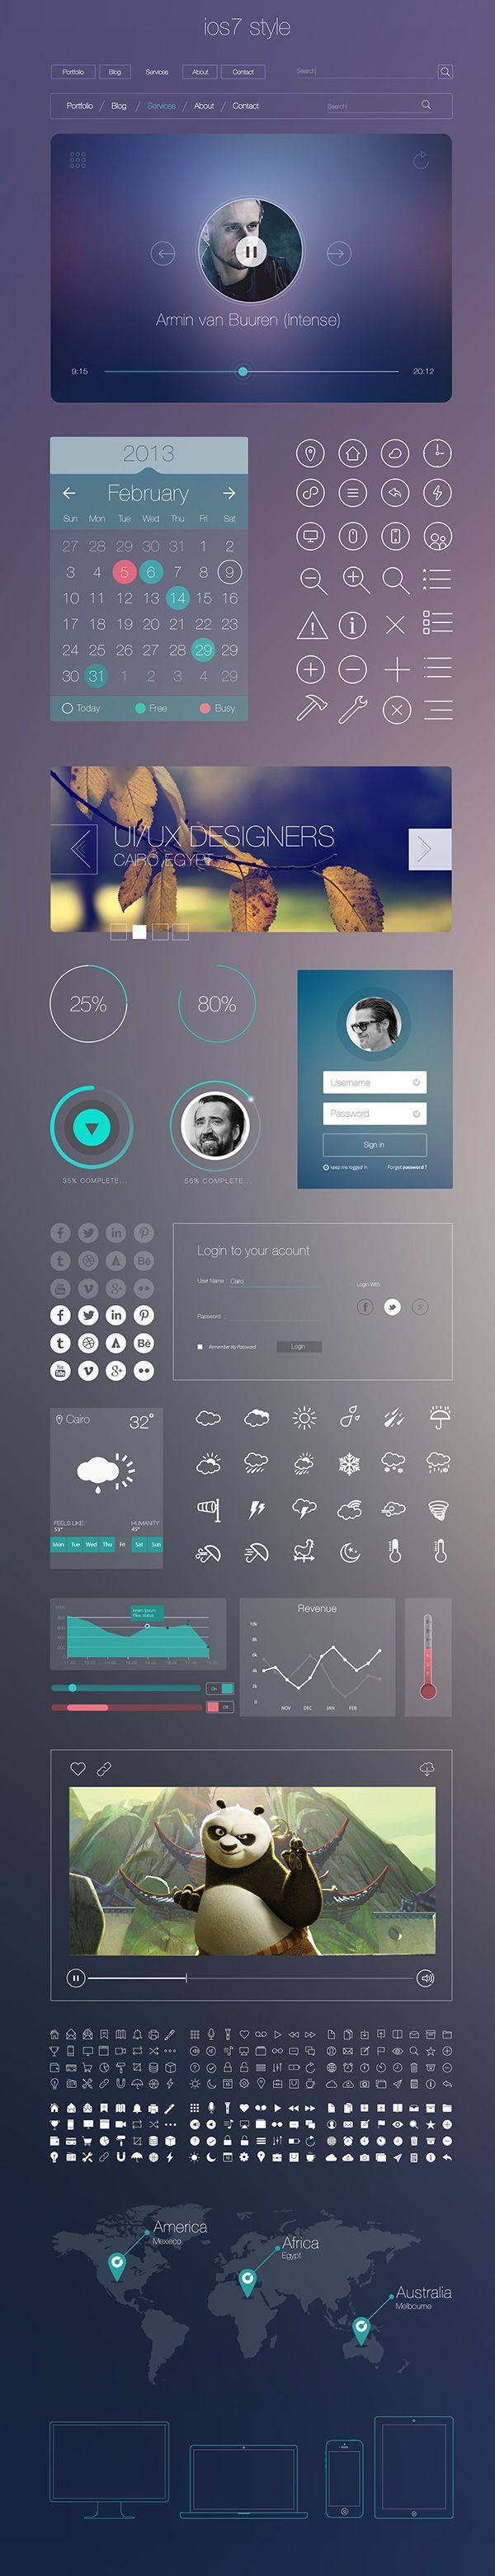 Cool iOS 7 Style UI Kit. Today's featured freebie is a iOS 7 inspired UI kit for modern apps. It includes a wide variety of elements built with vector shapes that can easily adapt to your needs. Created by Mahmoud Fahim and Mohamed Marakshy.  #featured #f